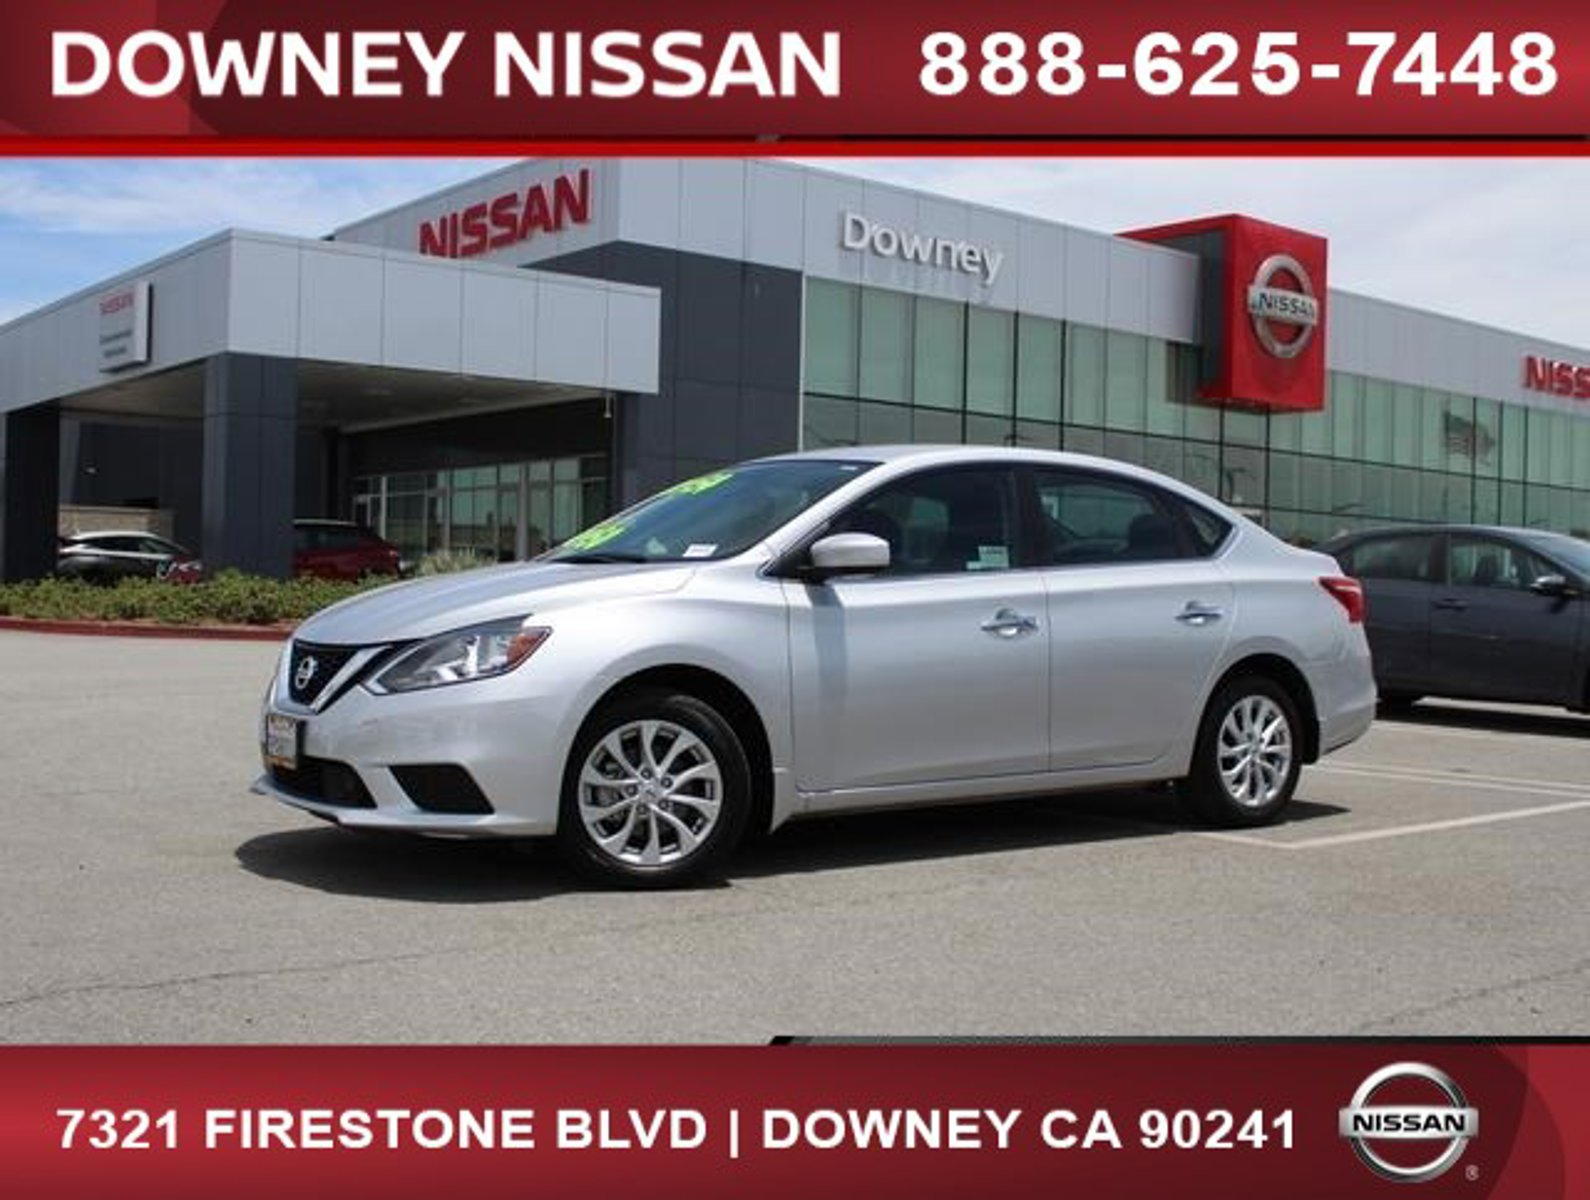 2019 Nissan Sentra SV SV CVT Regular Unleaded I-4 1.8 L/110 [20]